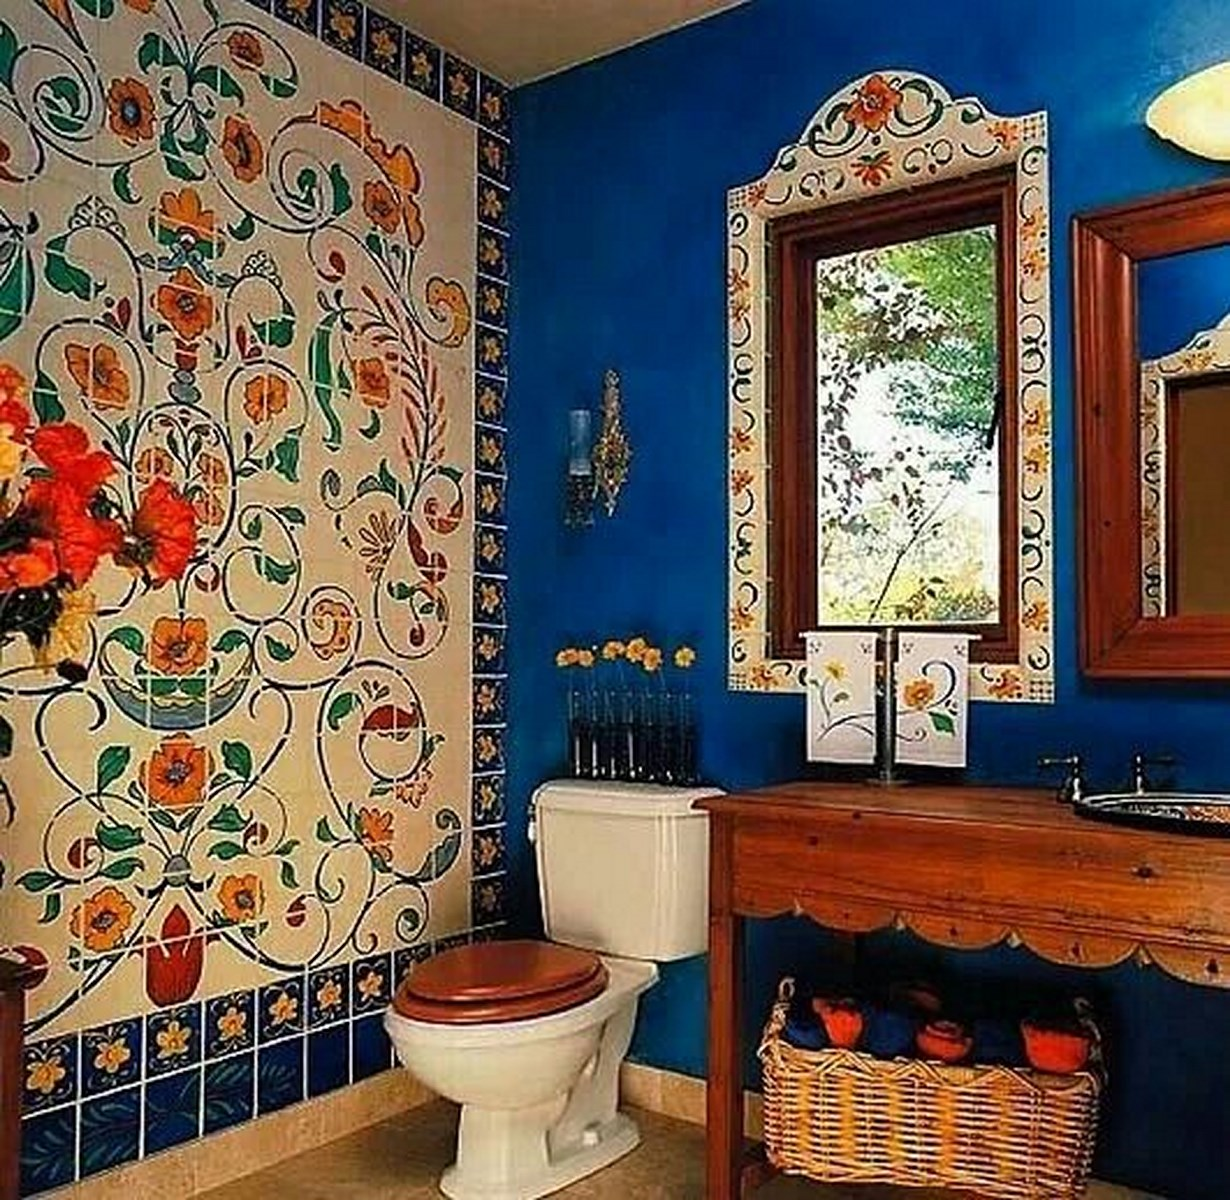 httprilane.comwp-contentuploads201404Quirky-Bohemian-Bathroom